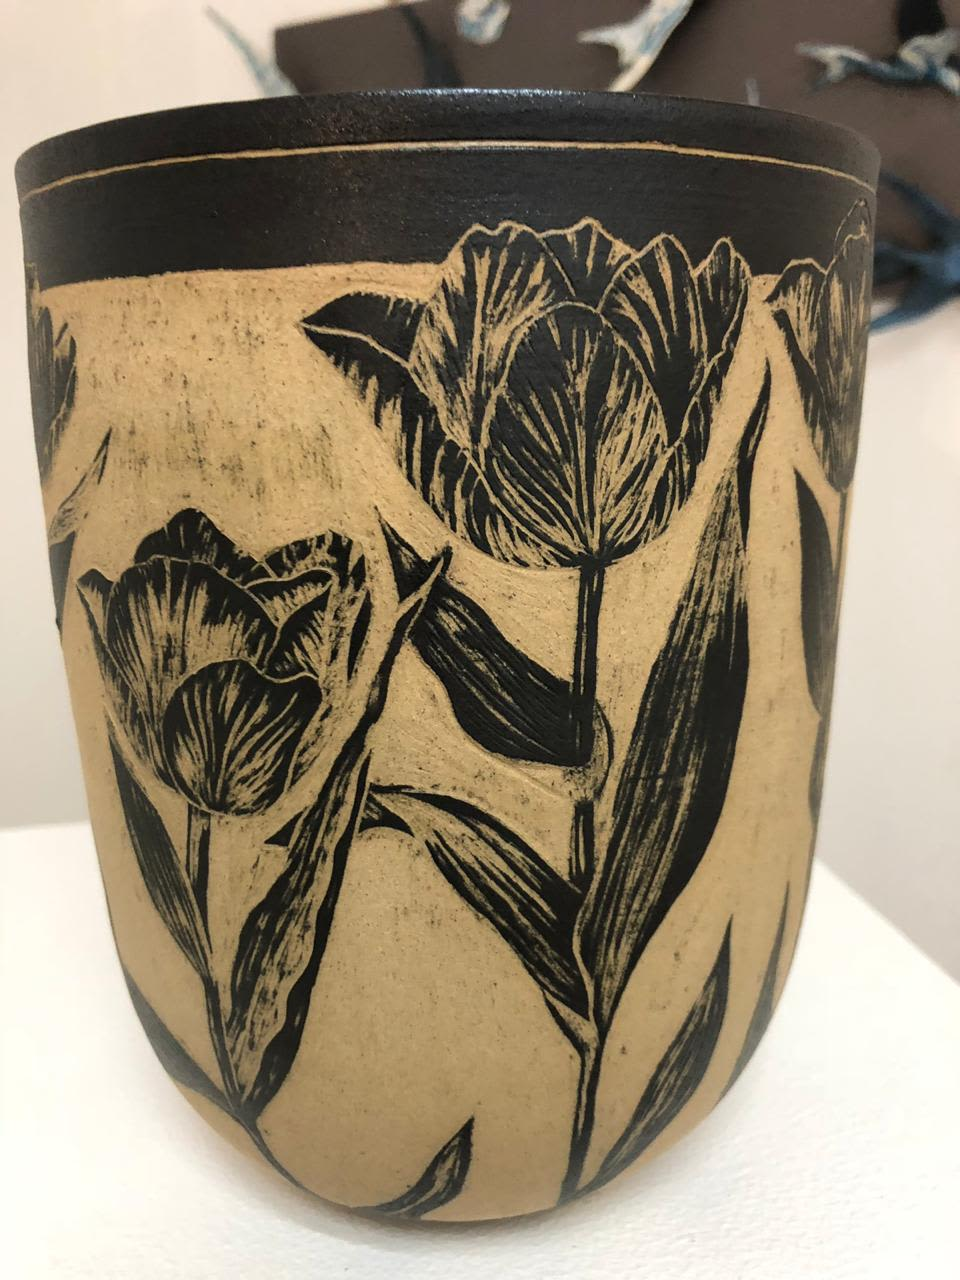 Botanical Inspired Sgraffito Ceramic Vases And Bowls By Sera Holland Handmade By Me Seen At Private Residence Cape Town Wescover